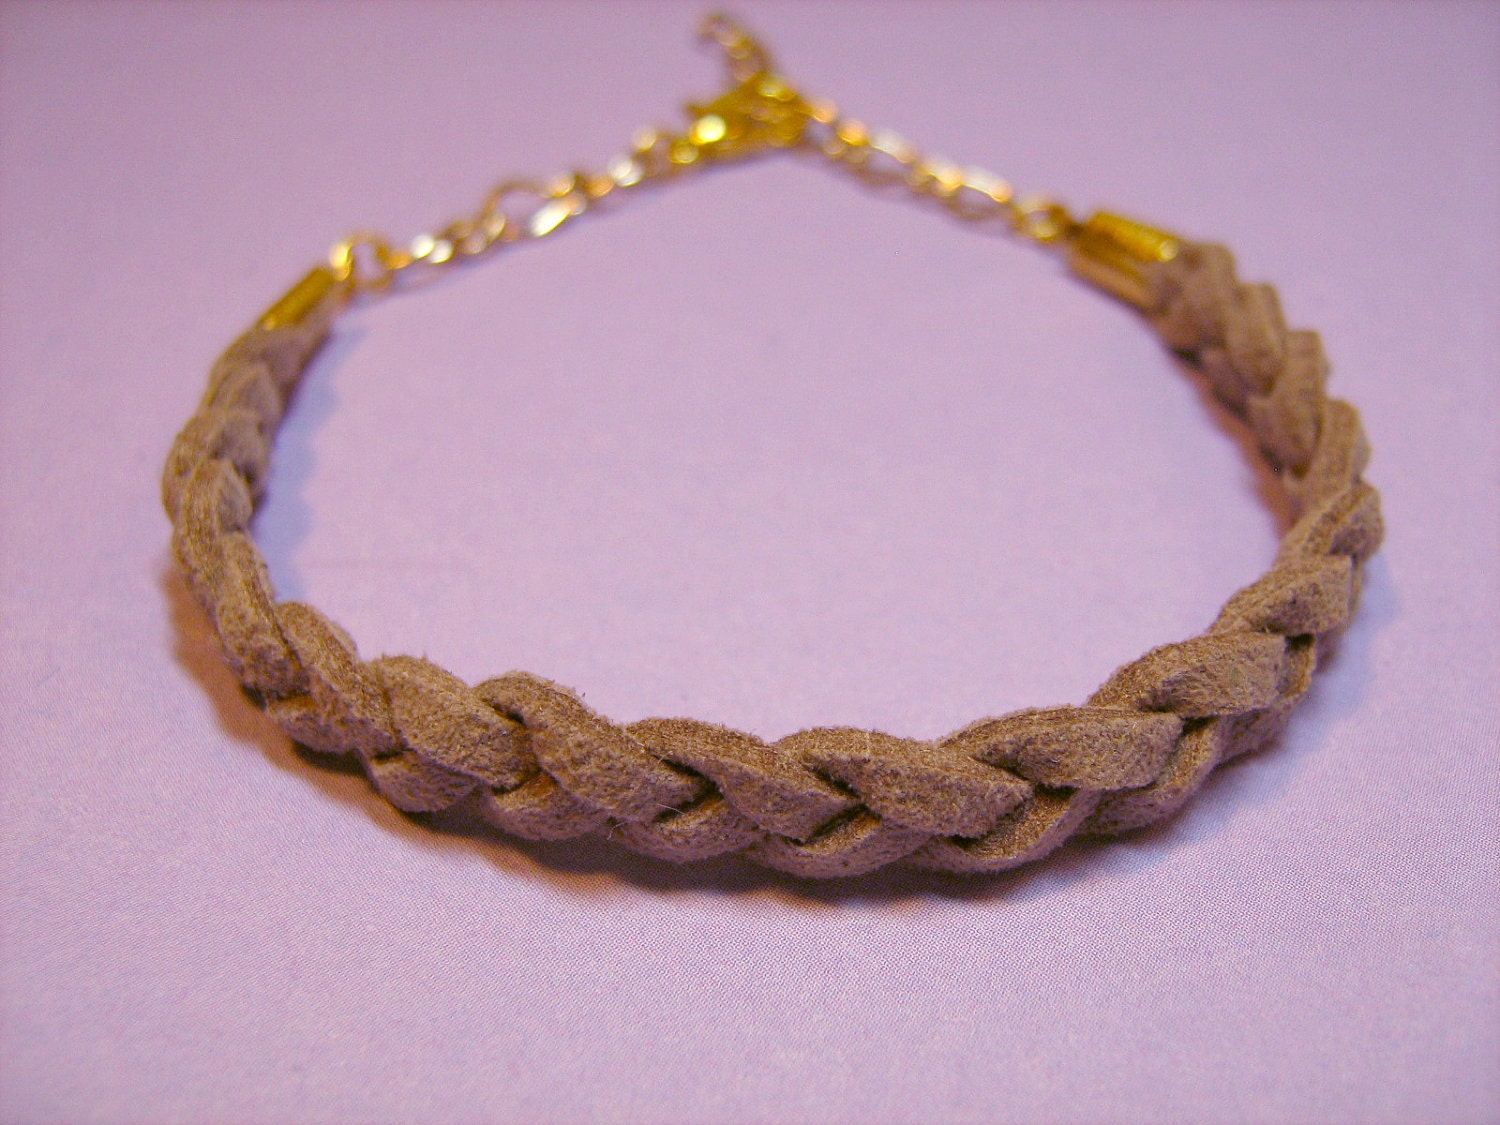 Bracelet: Tan Braided Suede Cord, Goldtone Findings, for Men or Women